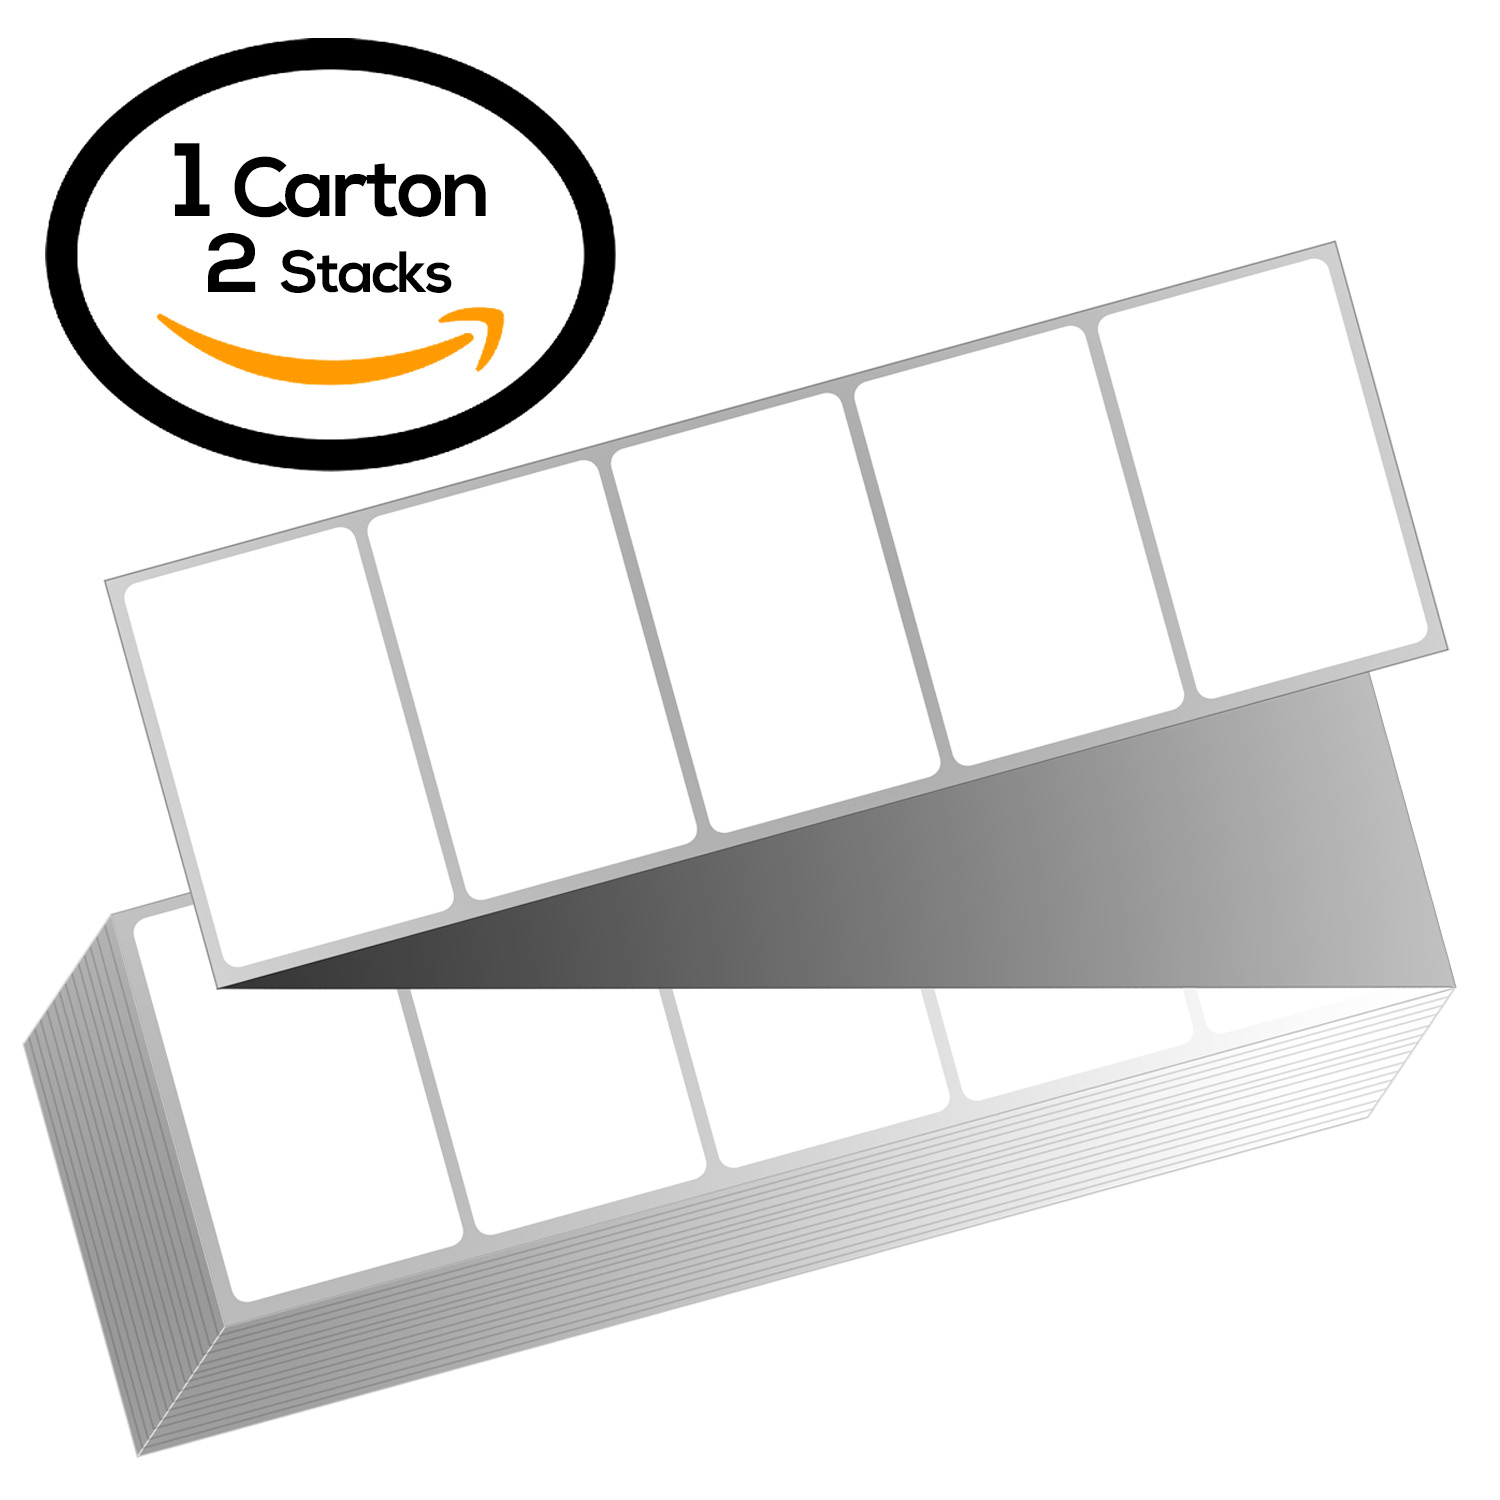 4 x 2 Fanfold Zebra Compatible Direct Thermal Labels (1 Carton)